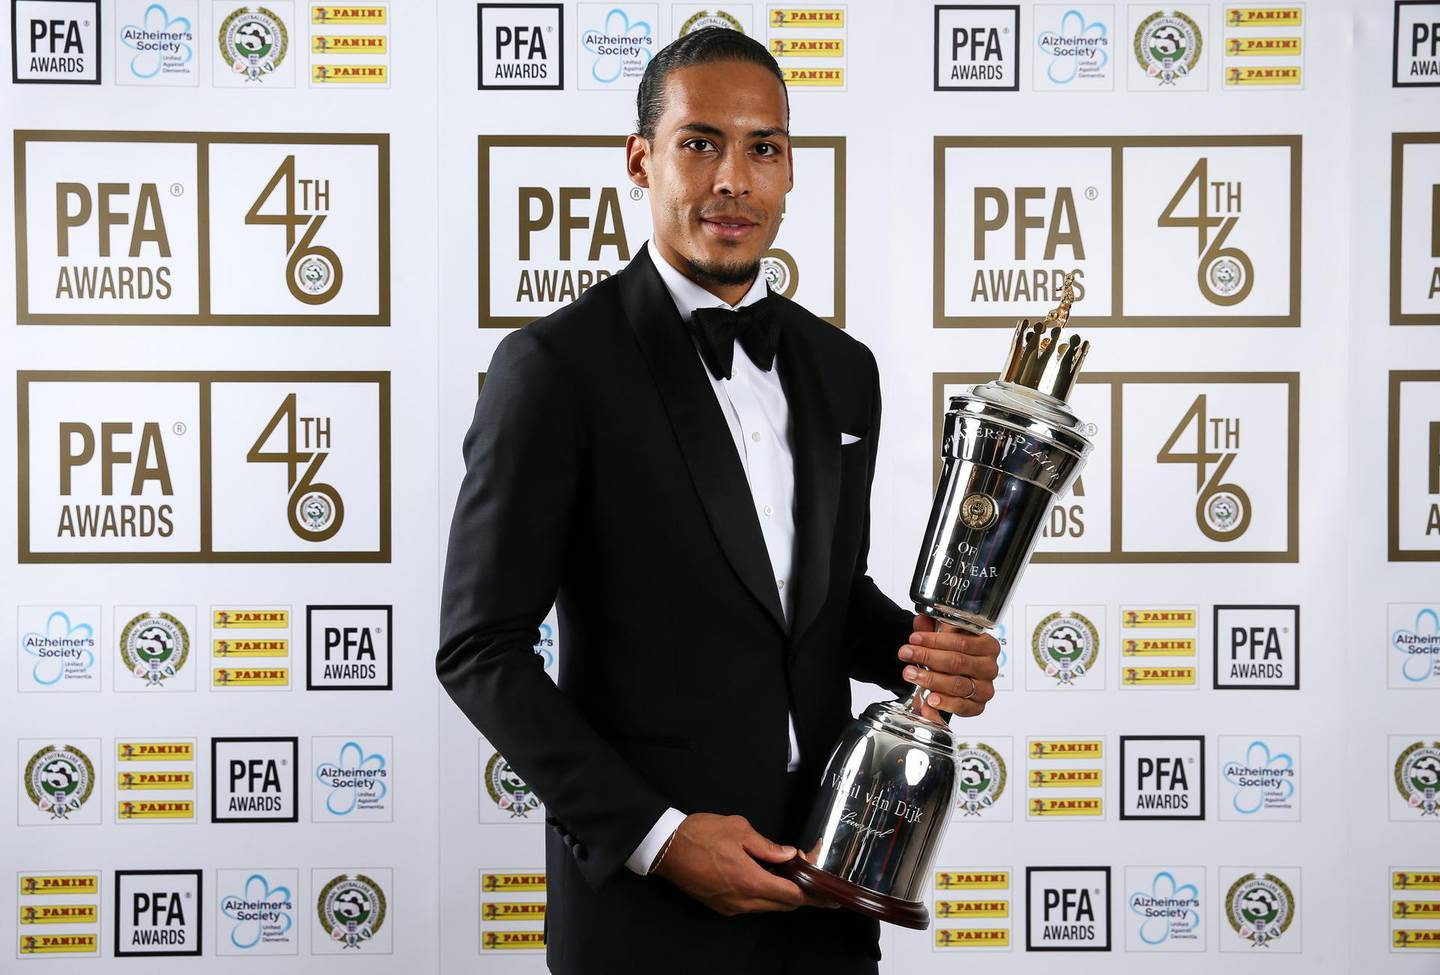 Liverpool's Virgil van Dijk poses with his PFA Player of the Year award during the 2019 PFA Awards at the Grosvenor House Hotel, London. PRESS ASSOCIATION Photo. Picture date: Sunday April 28, 2019. See PA story SOCCER PFA. Photo credit should read: Barrington Coombs/PA Wire